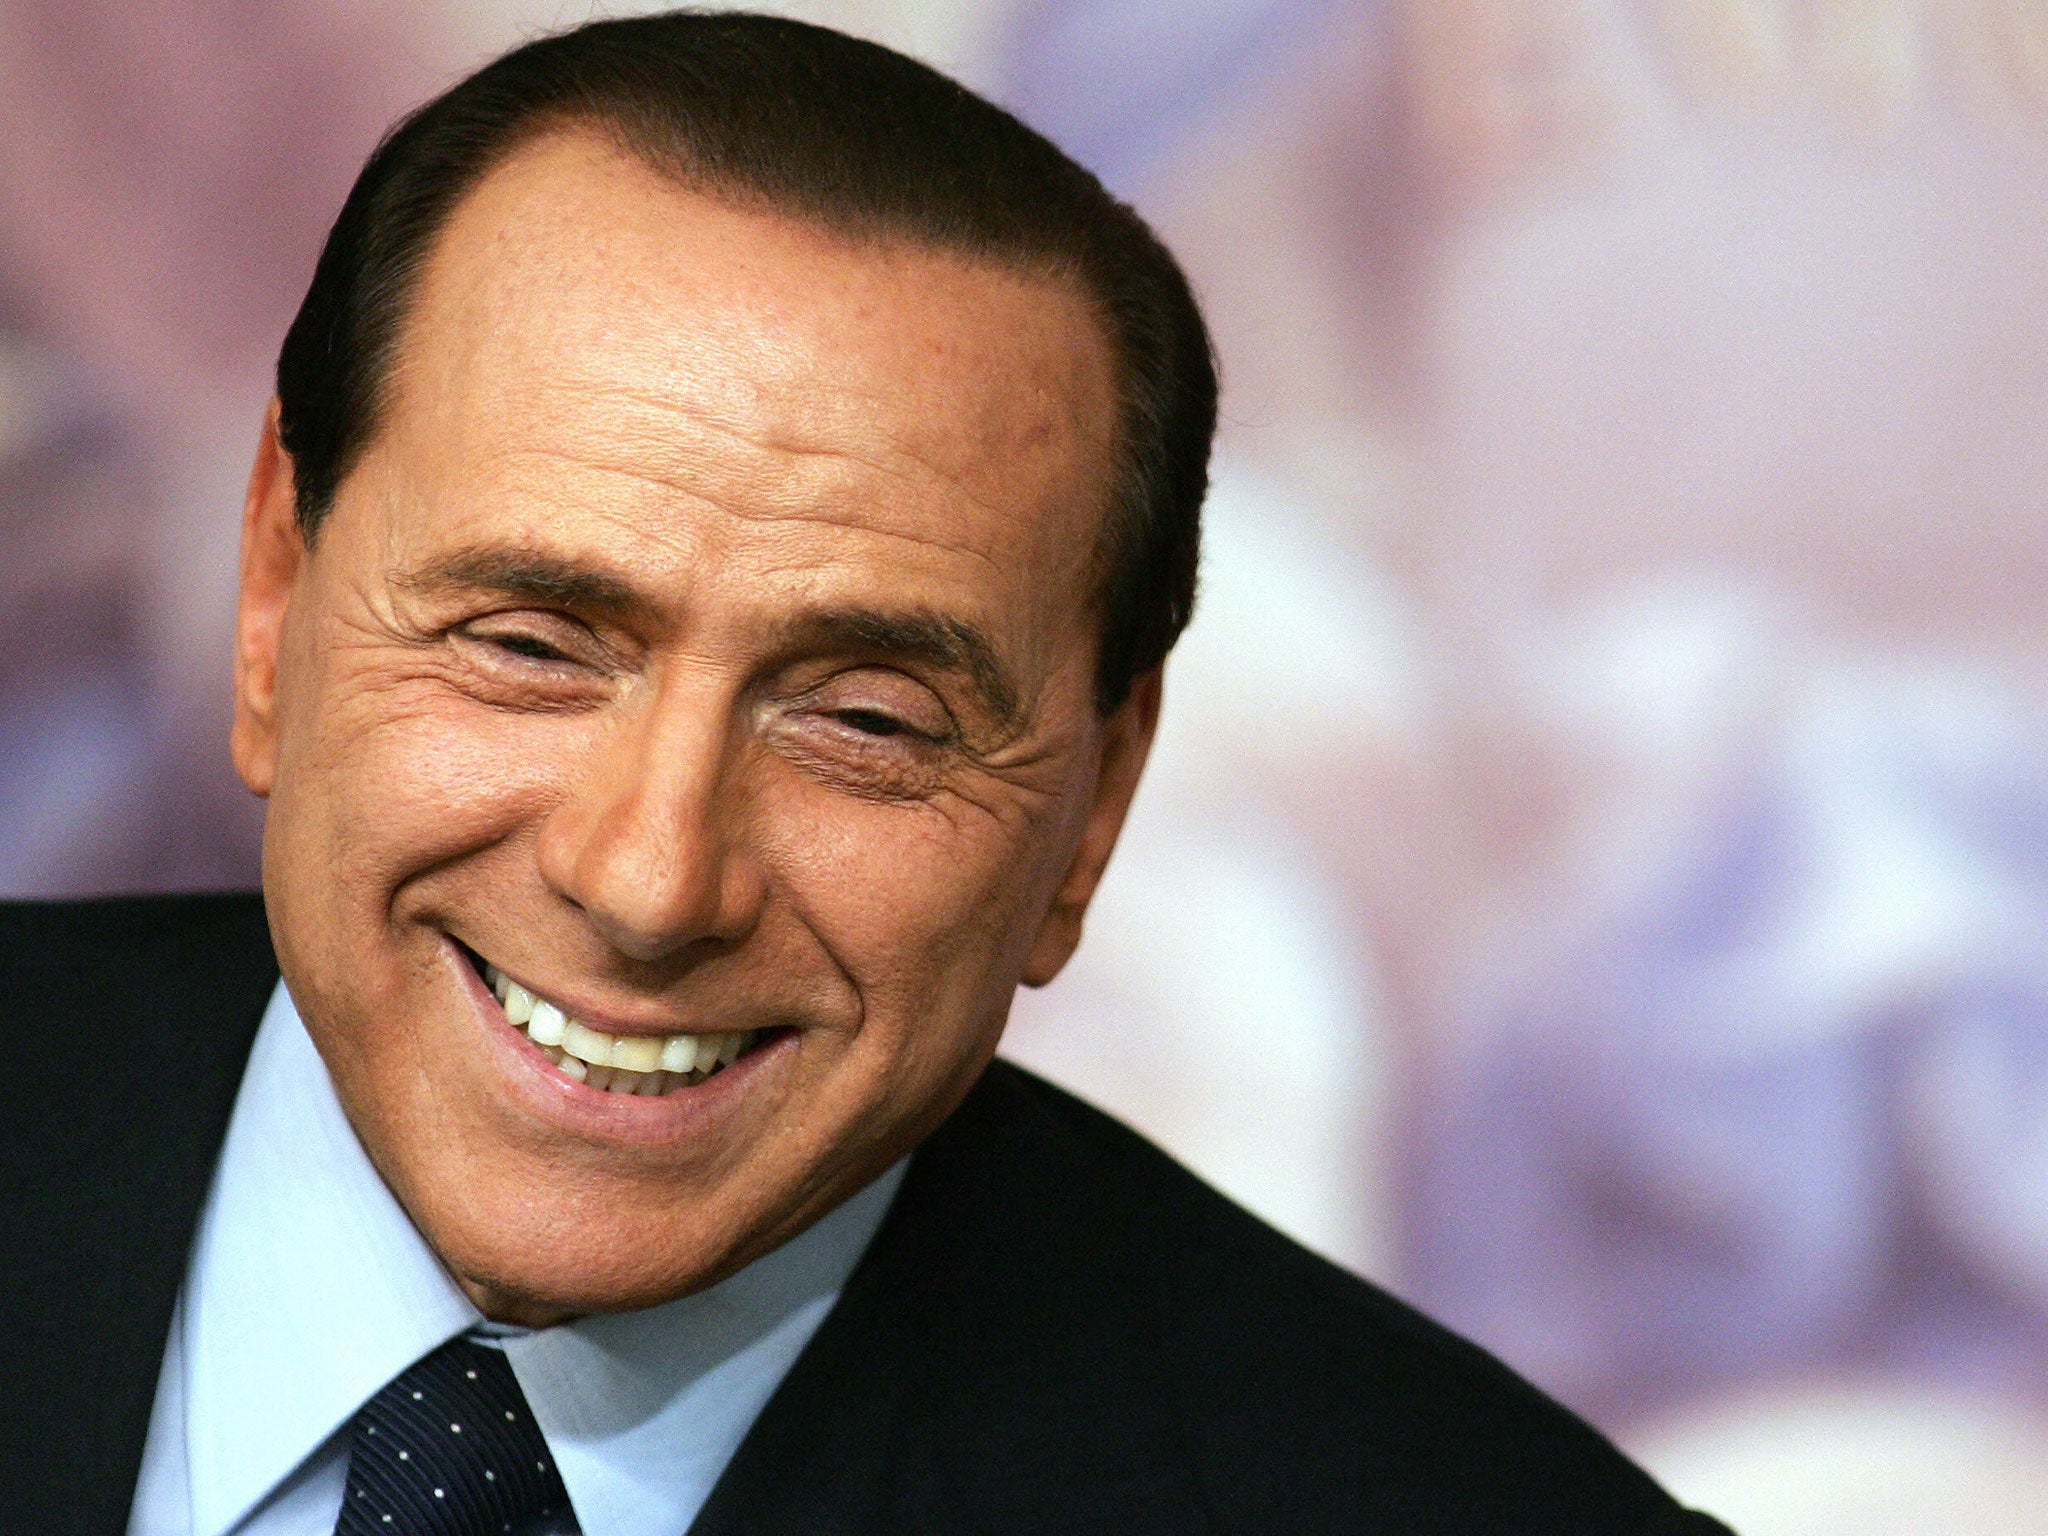 the whole world is against us silvio berlusconi says